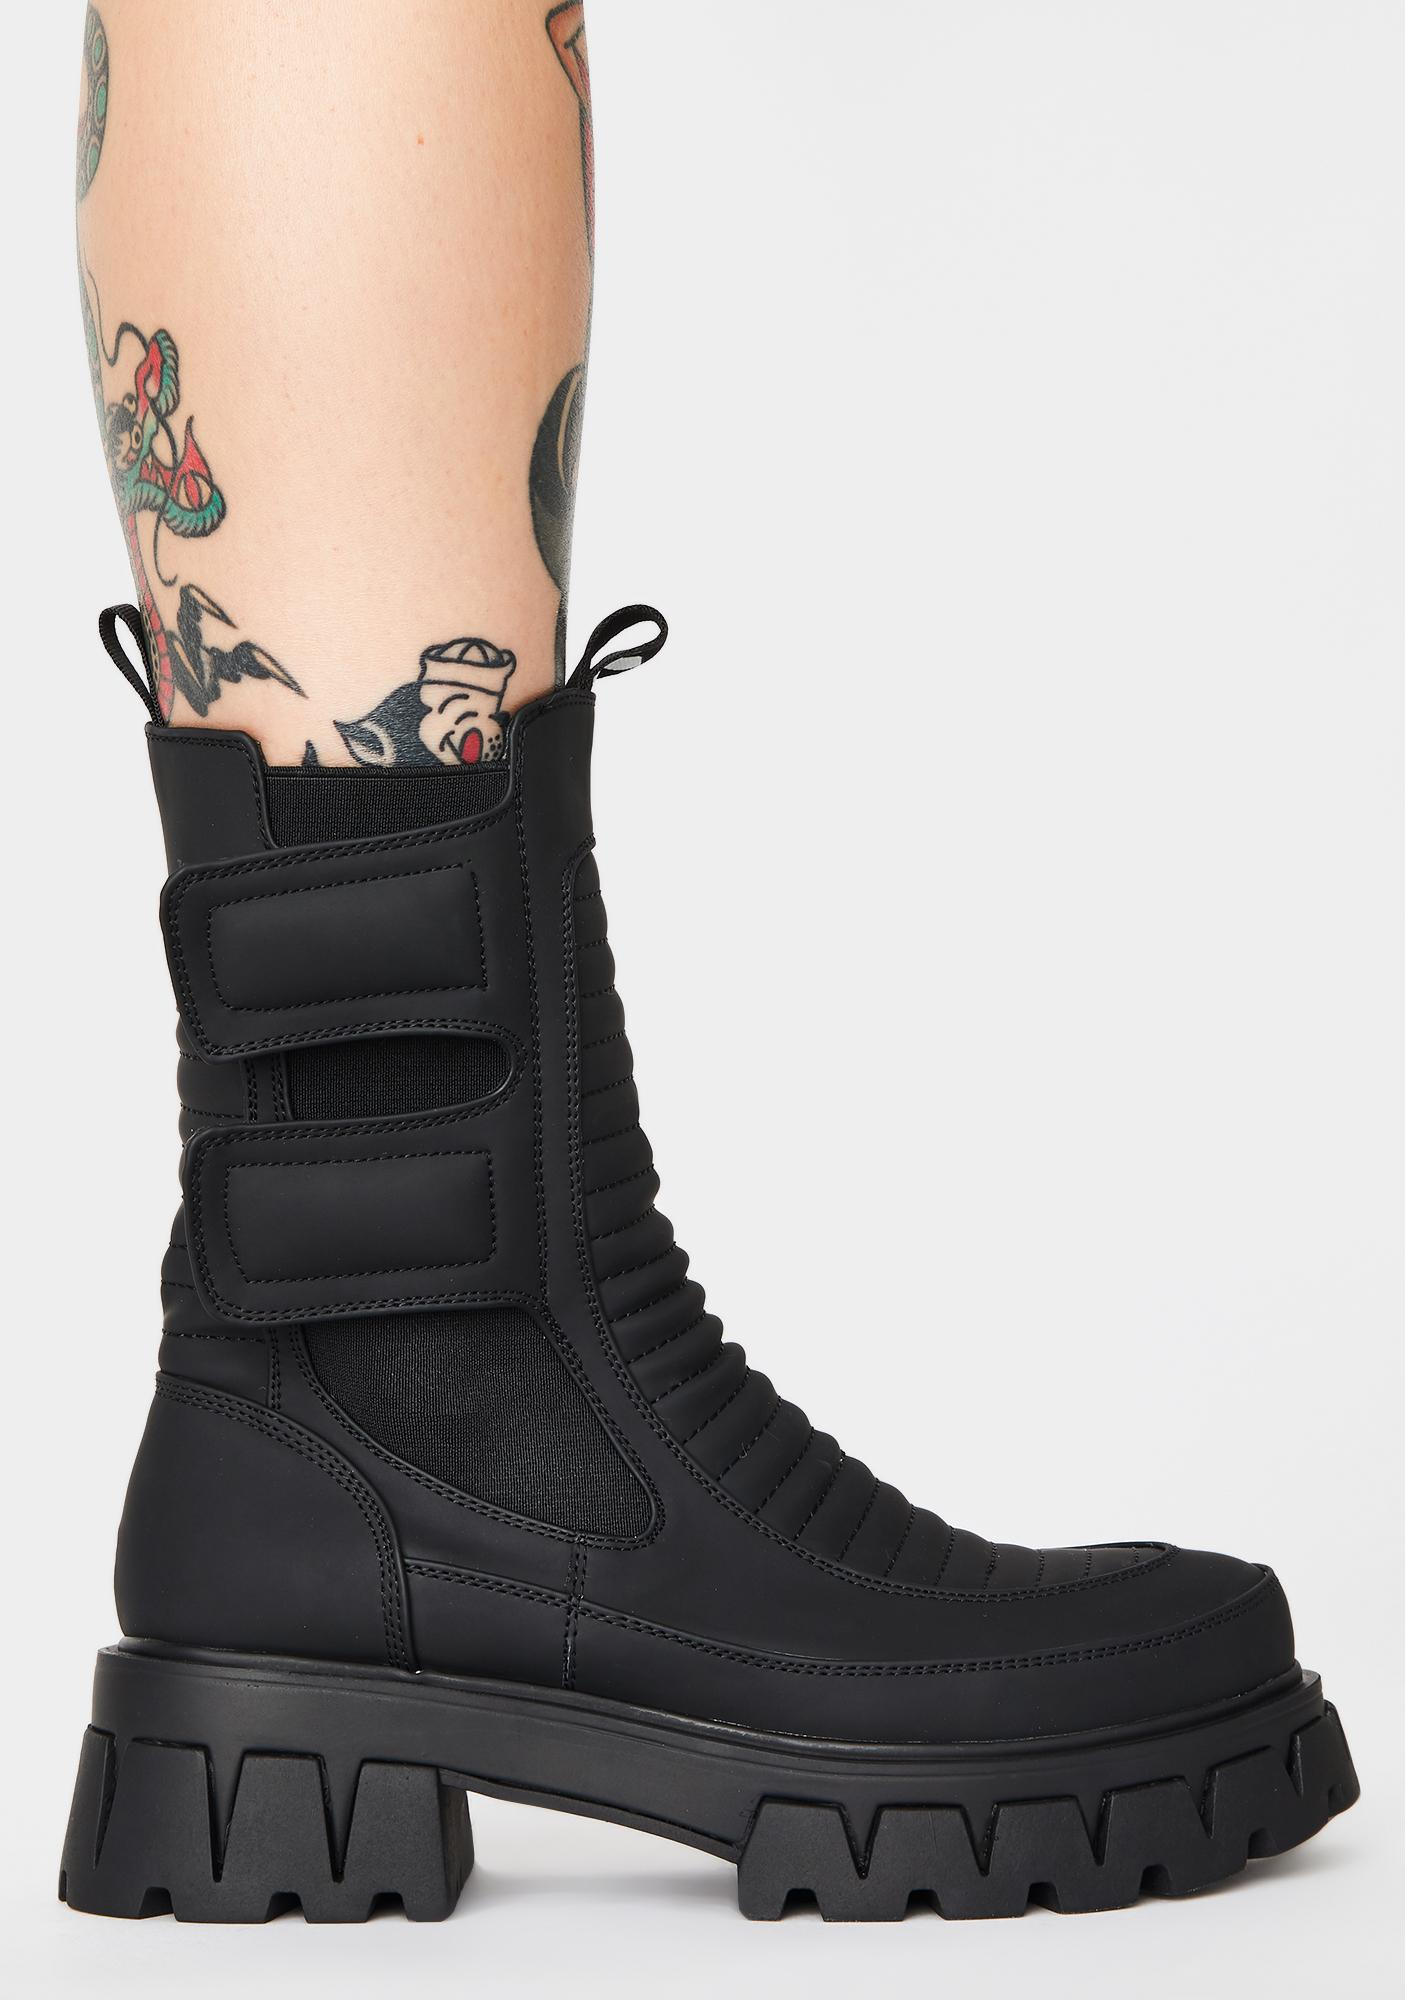 Koi Footwear Vader Ankle Boots